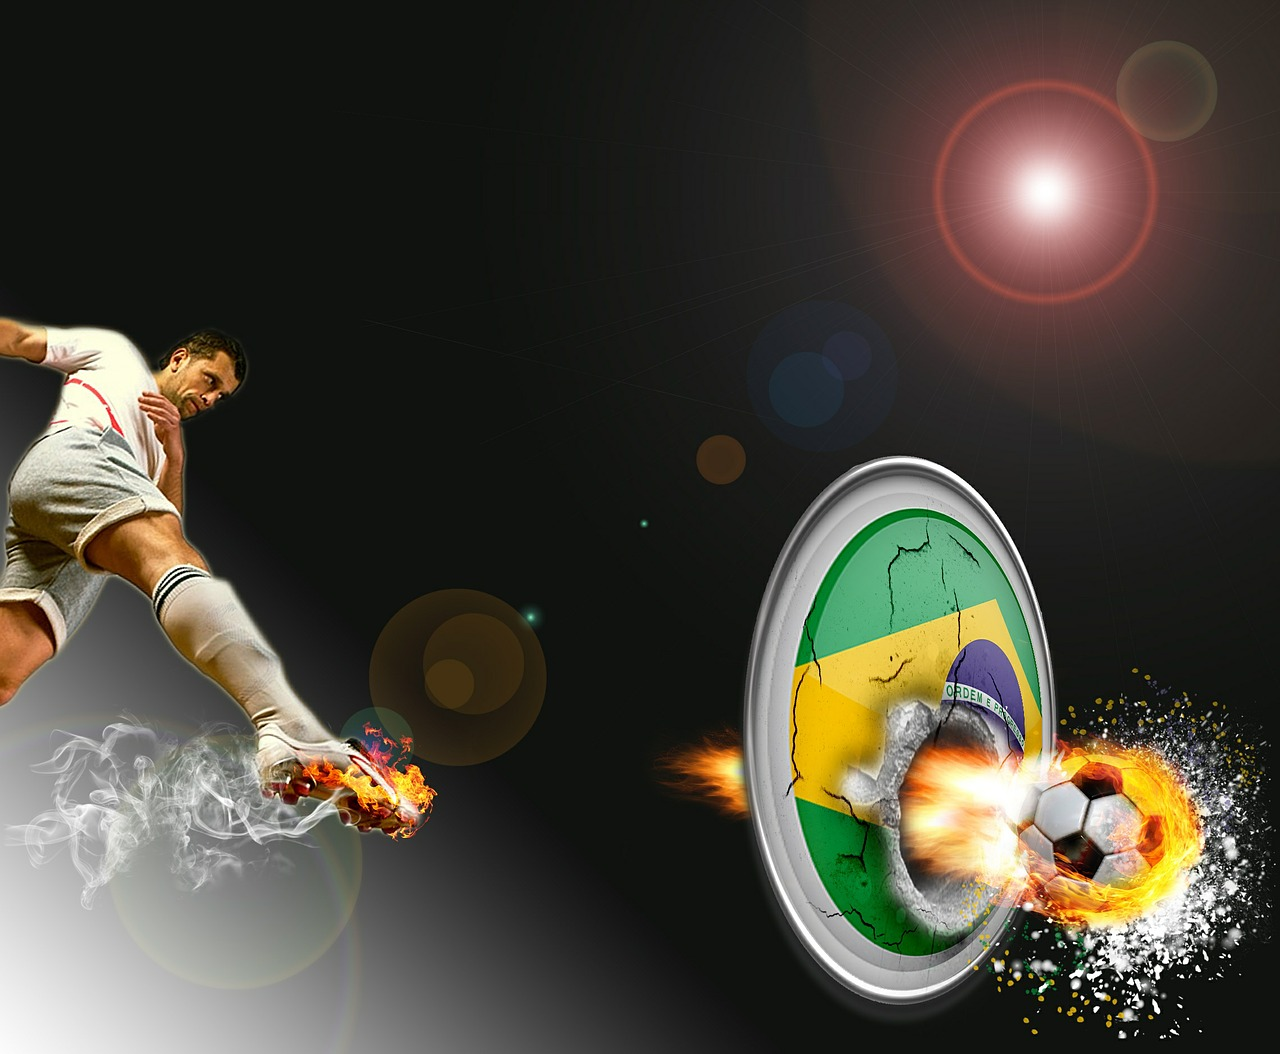 football brazil world cup 2014 free picture